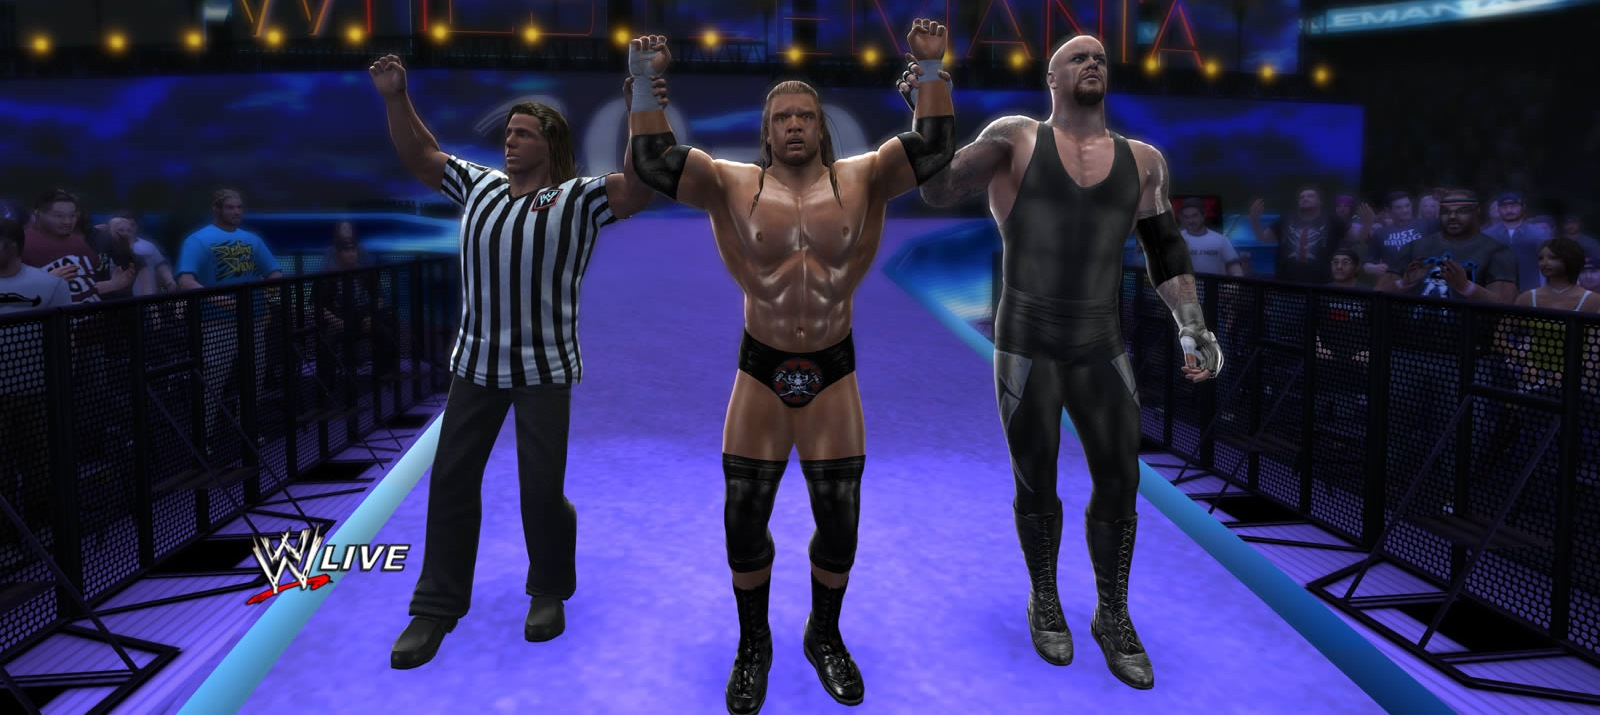 Wwe2k14_review_c_1600